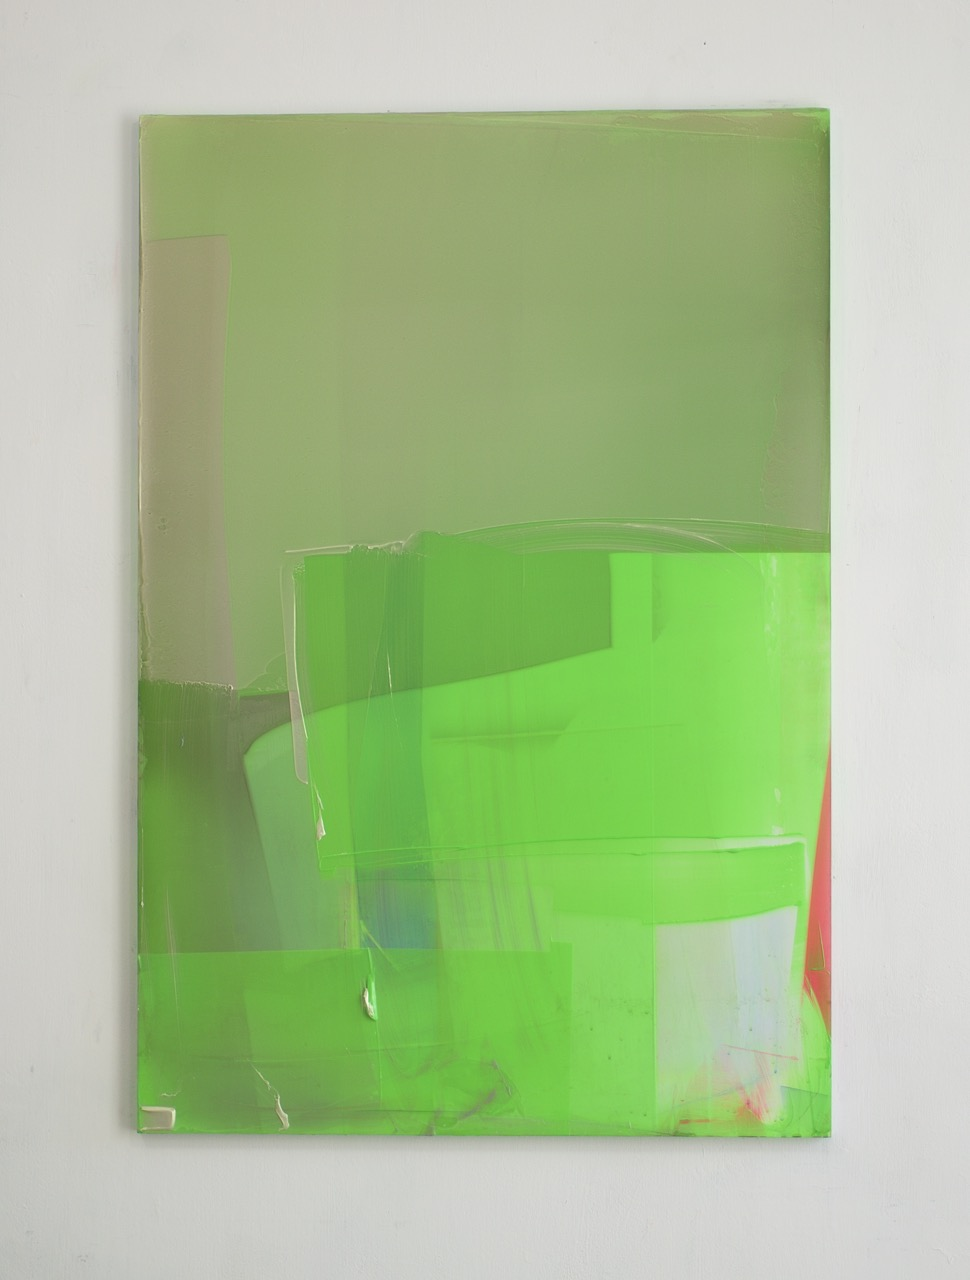 Untitled Green Composition, for John, 2016, 110x75cm.jpg